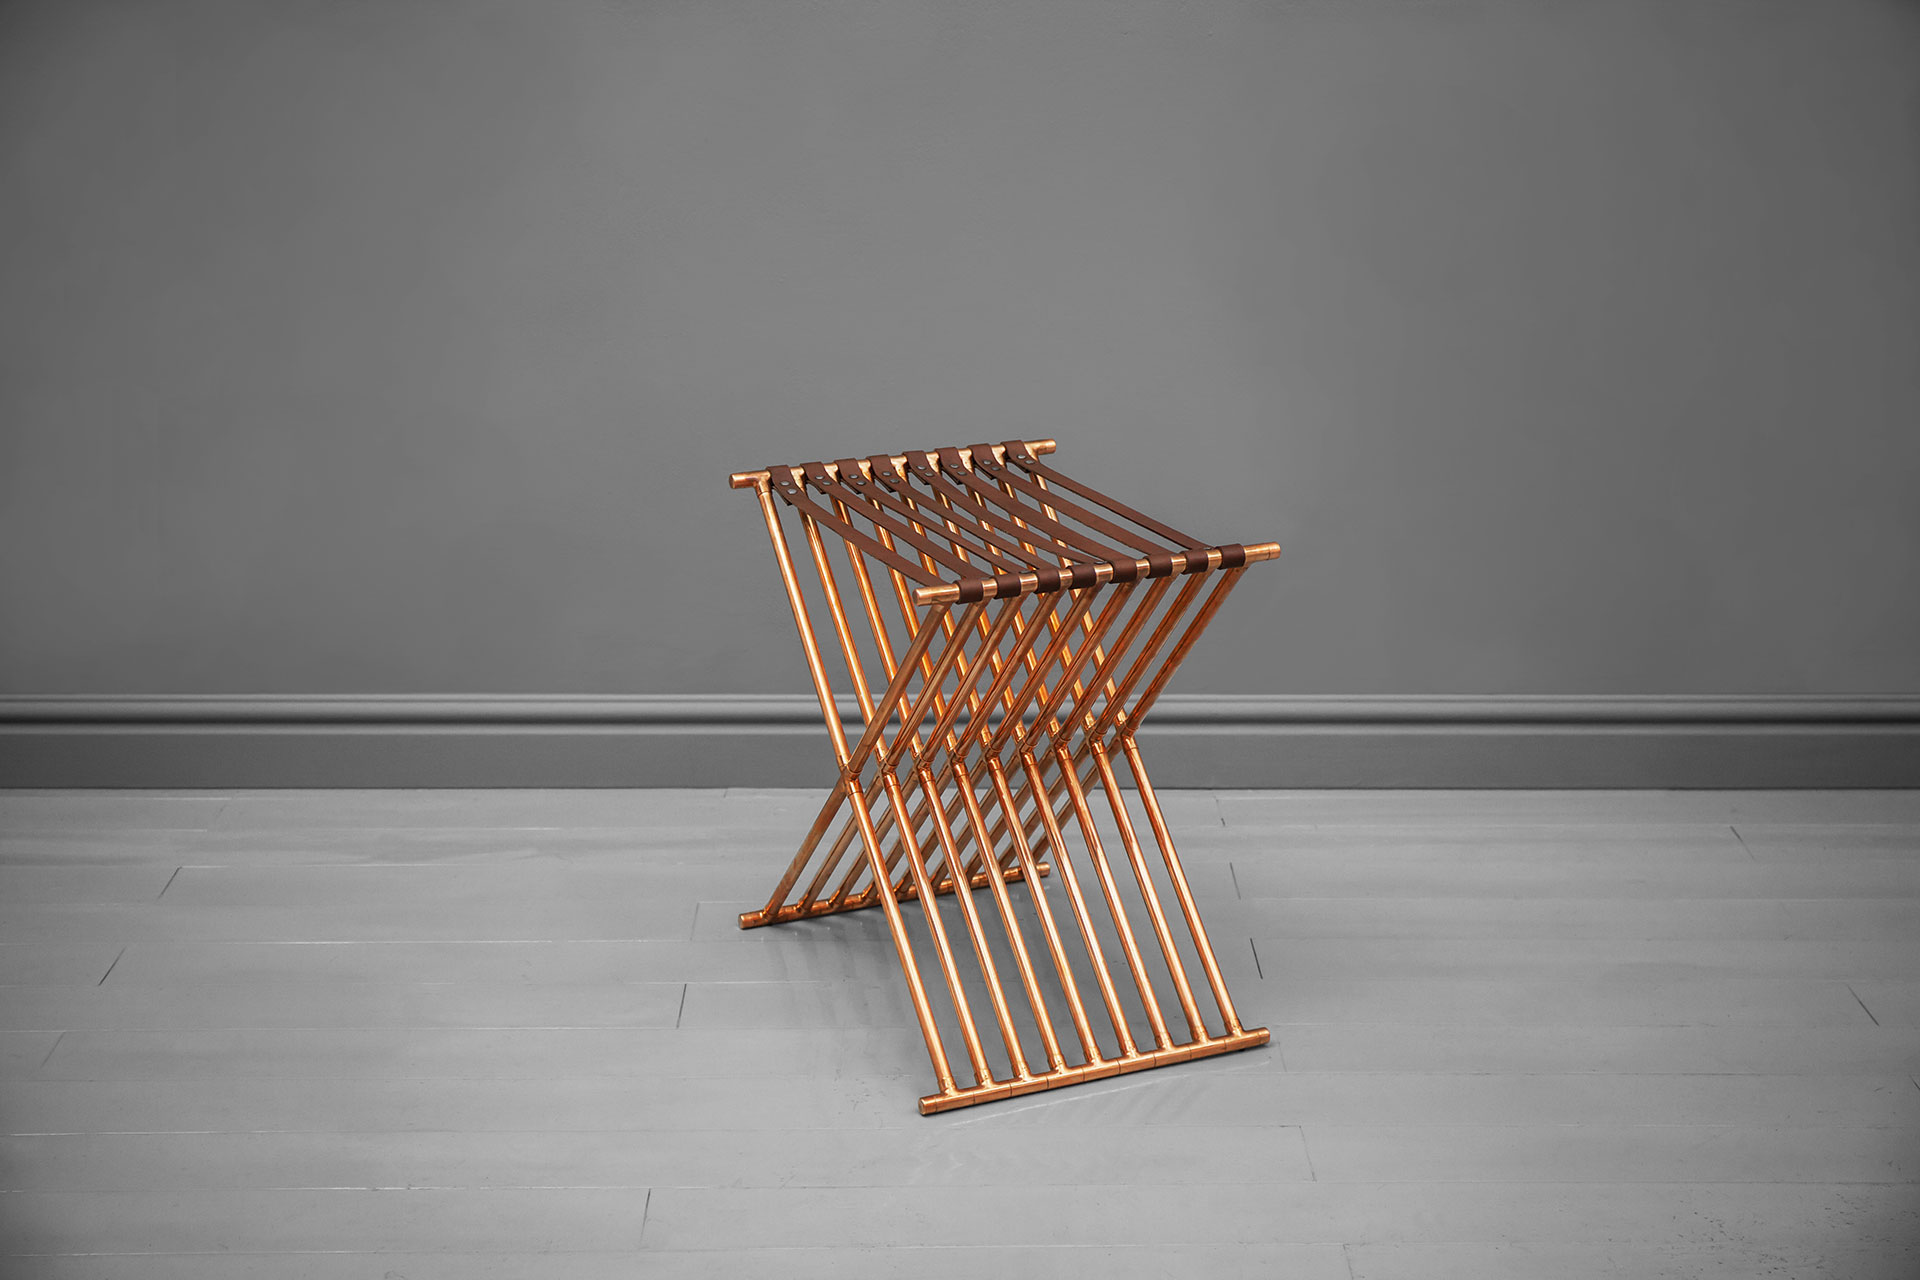 Entrance chair inspired by geometric design